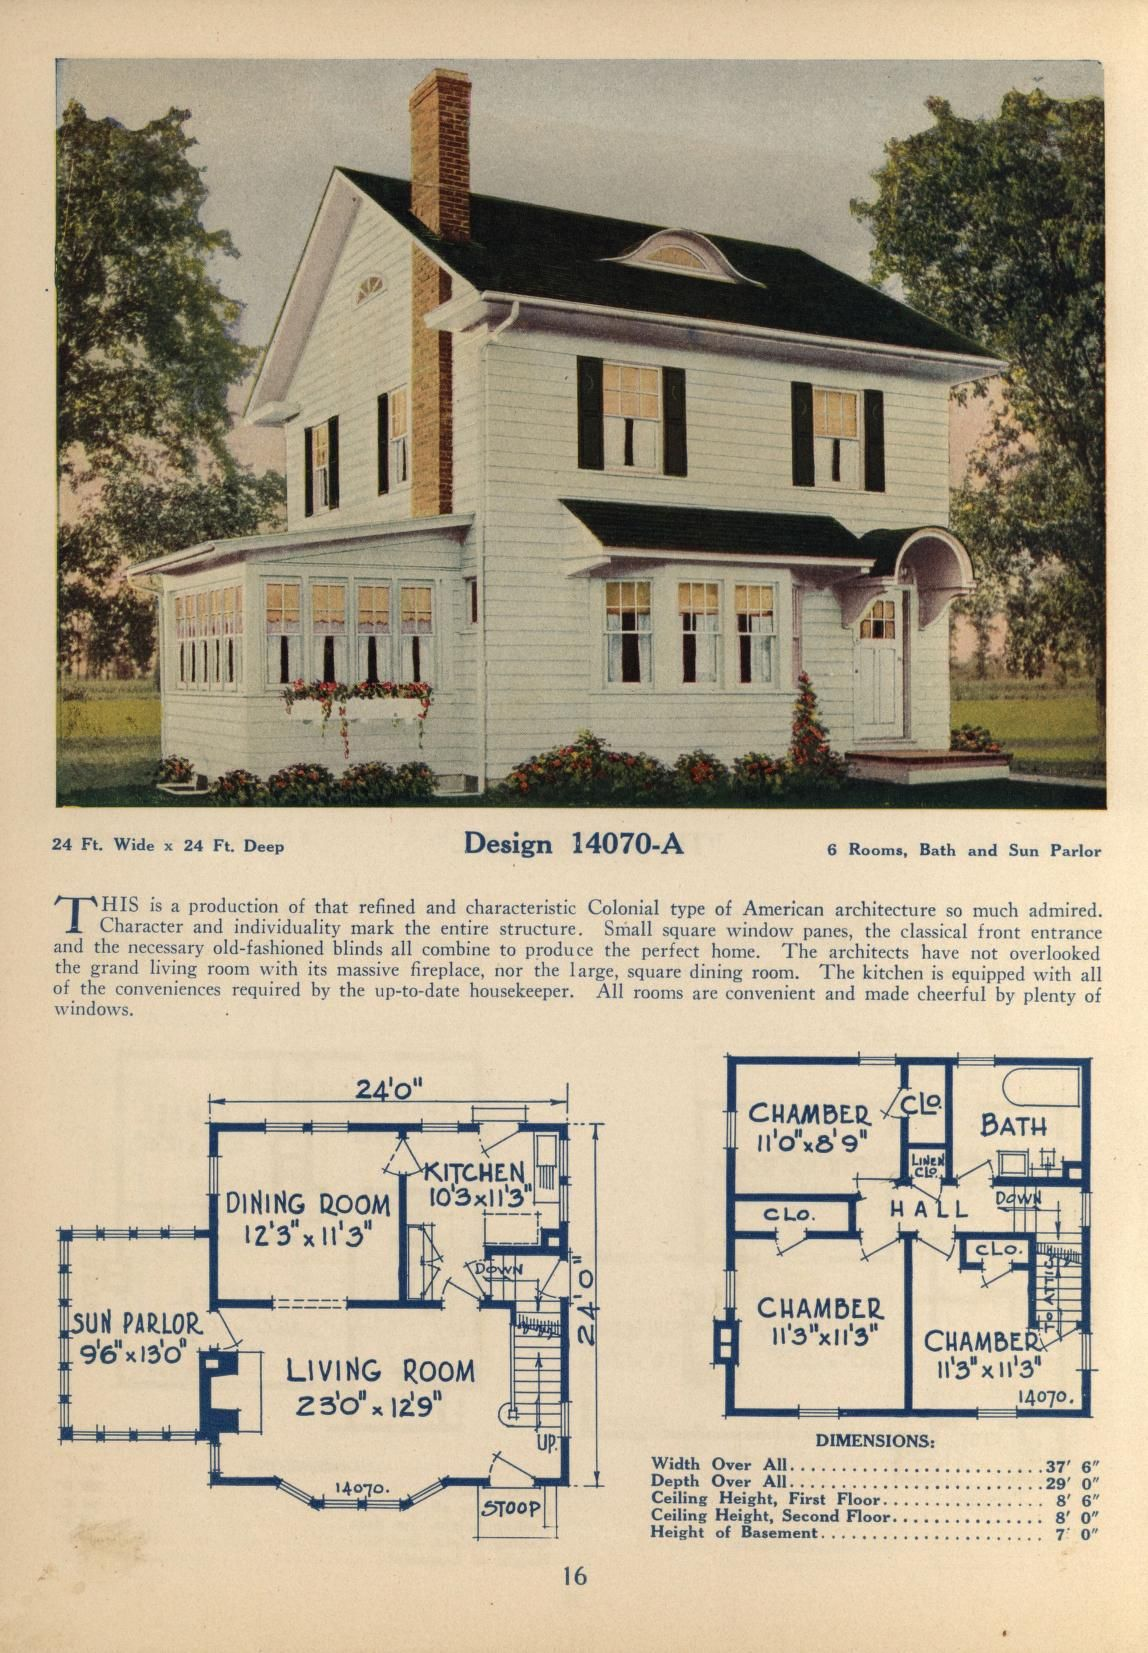 Deyo S Book Of Homes Warren V Deyo Free Download Borrow And Streaming Internet Archive Different House Styles House Layouts Old Houses